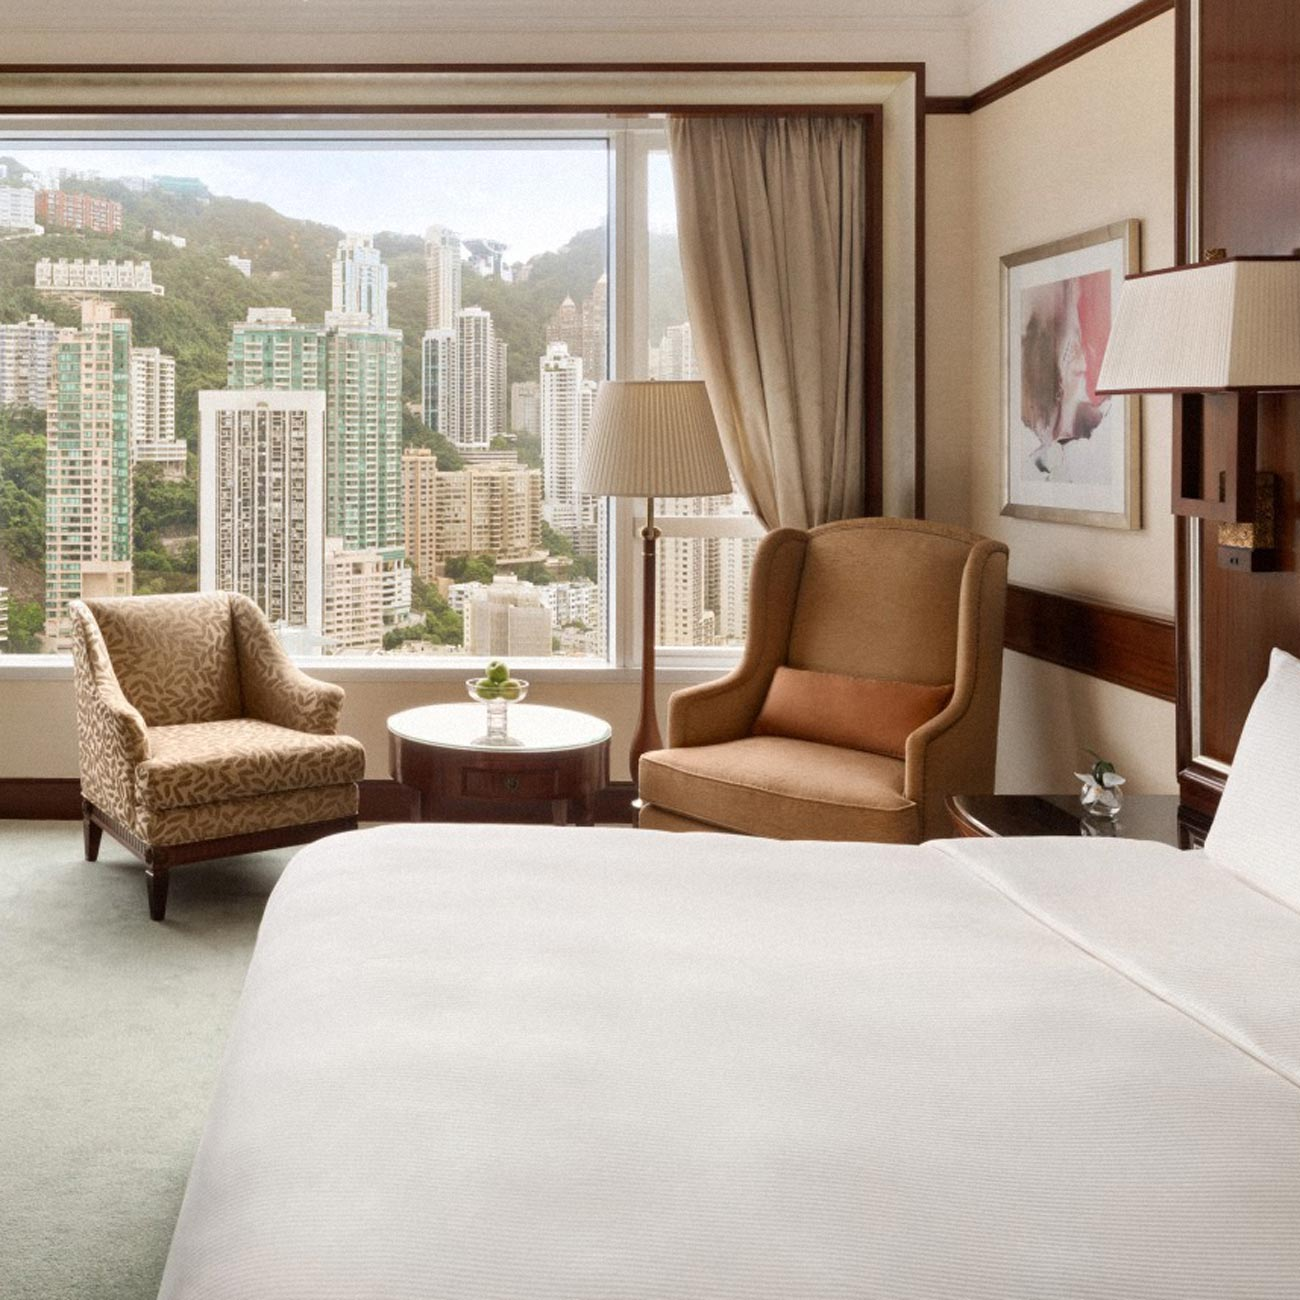 A hotel room overlooking Hong Kong